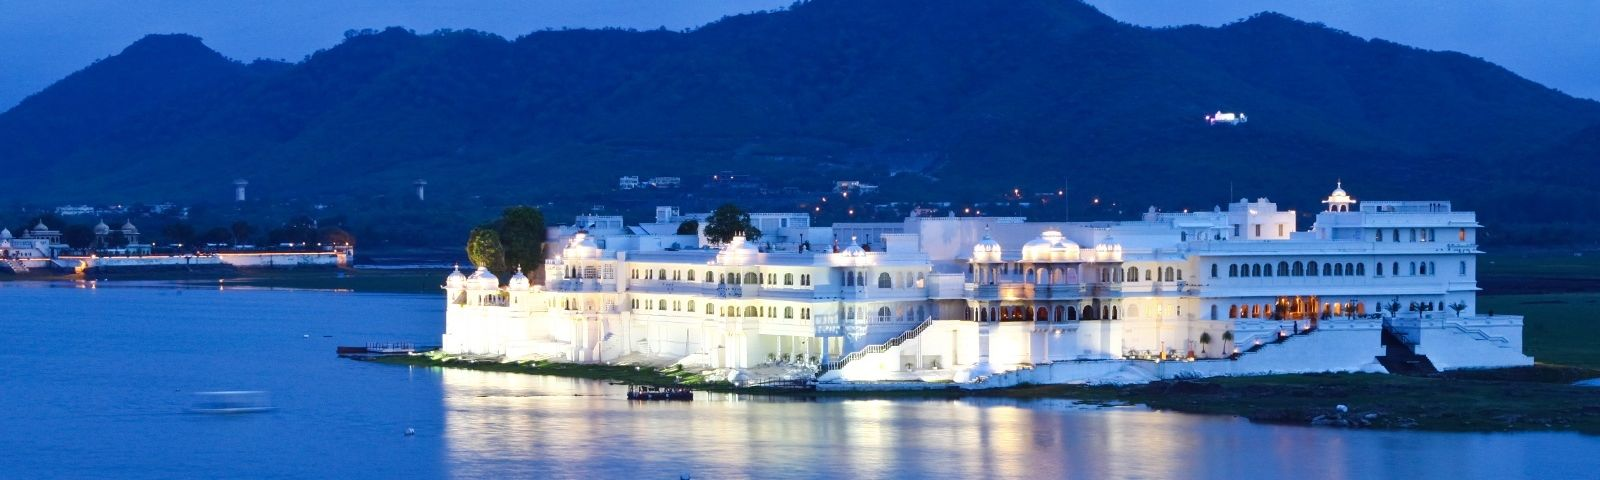 Taj Lake Palace in Udaipur, India. One of the Top Ten Palace & Heritage Hotels in India